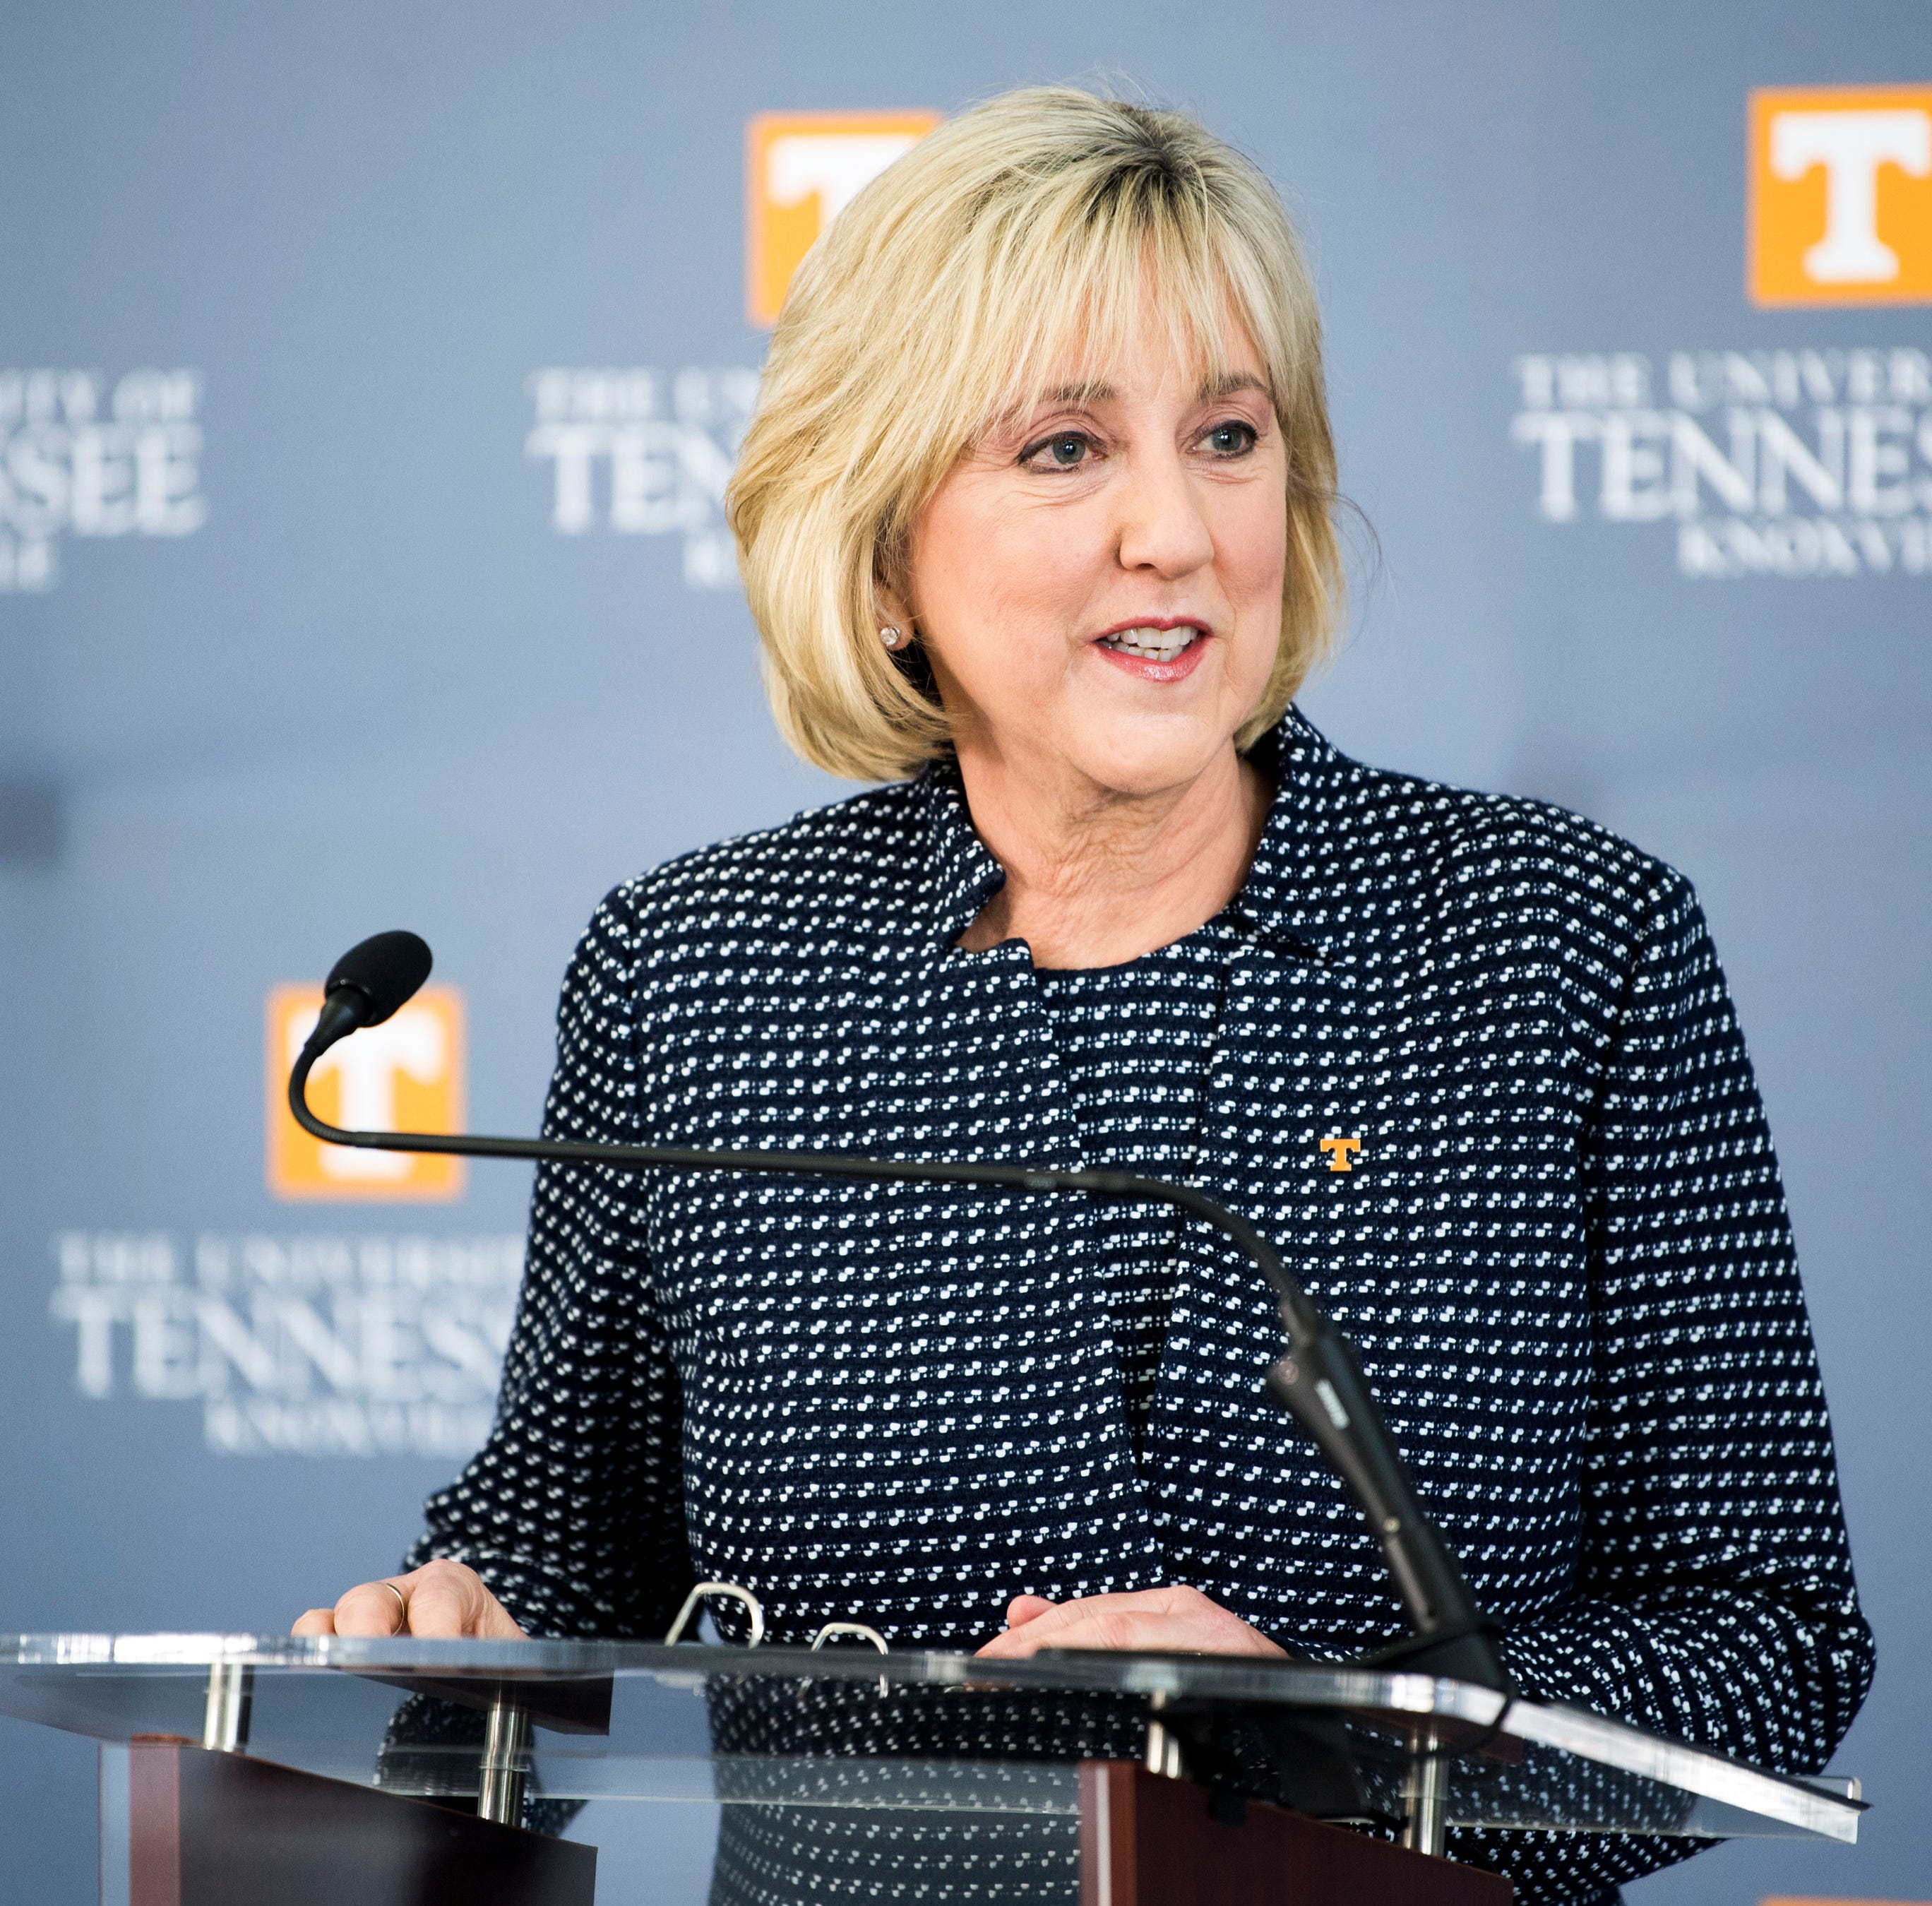 UT-Knoxville chancellor talks plans: 'I'm thrilled to return to the University of Tennessee'